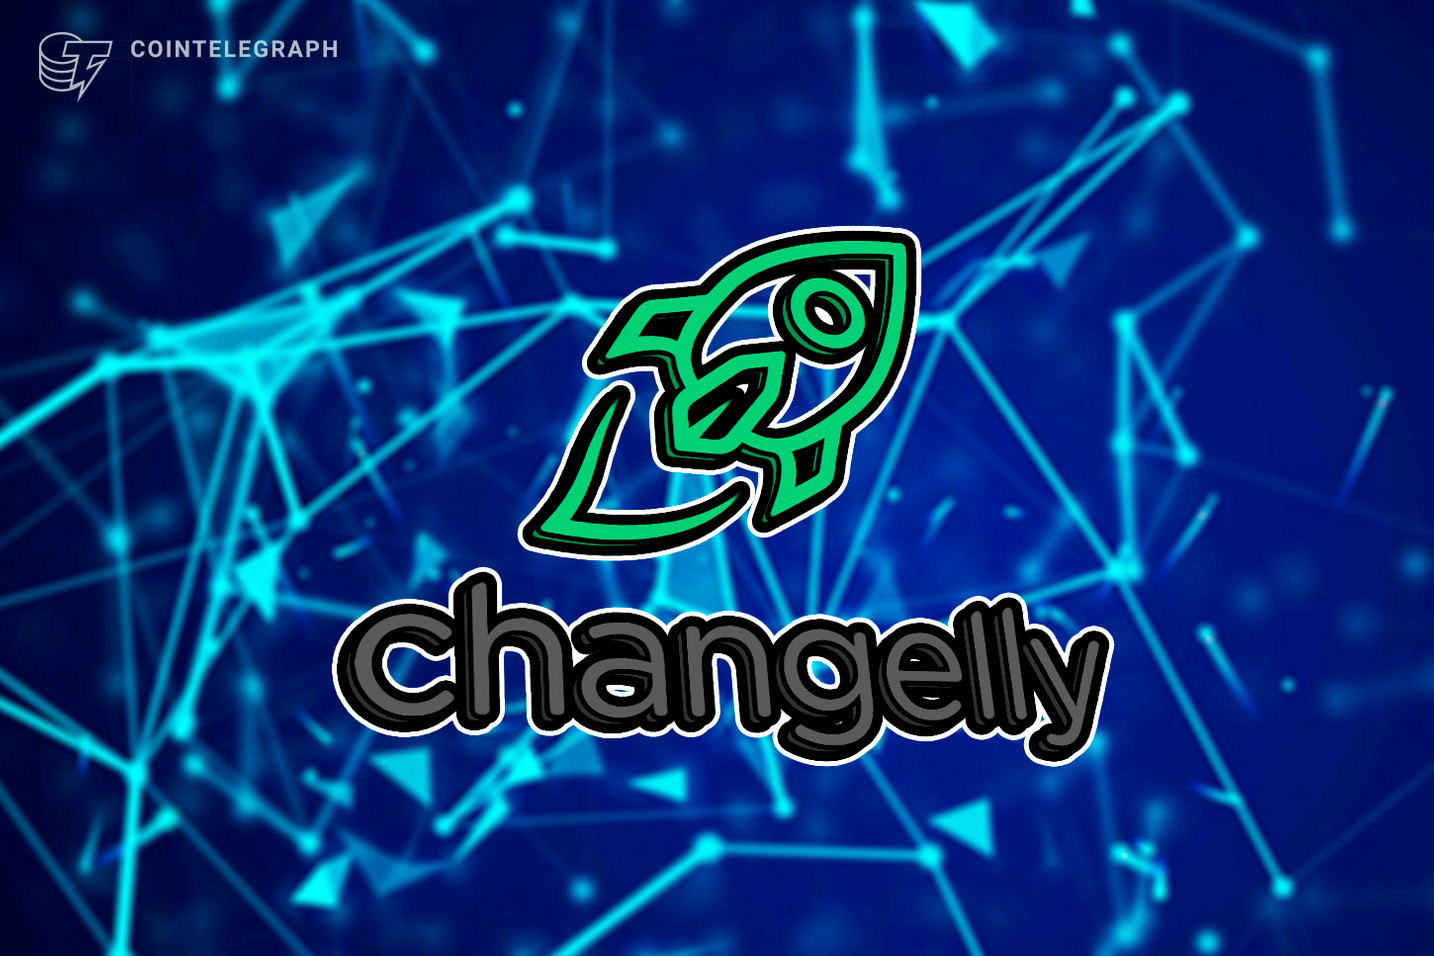 『Changelly』と『Indacoin』提携4周年~トークンの無料配布などを実施